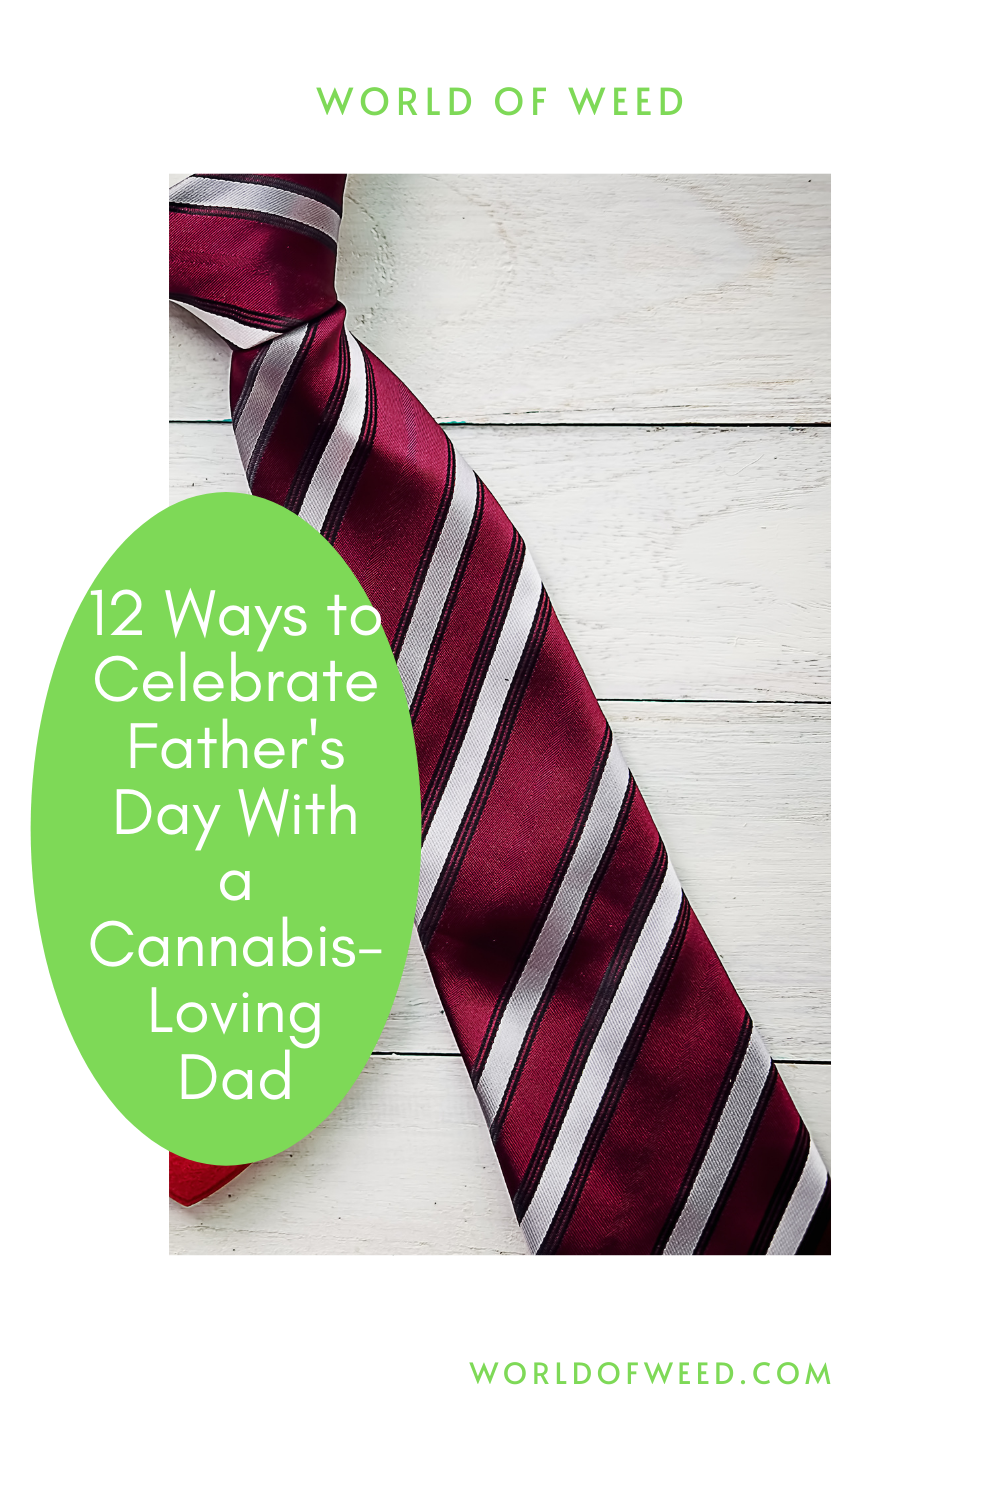 12 Ways to Celebrate Father's Day With a Cannabis-Loving Dad